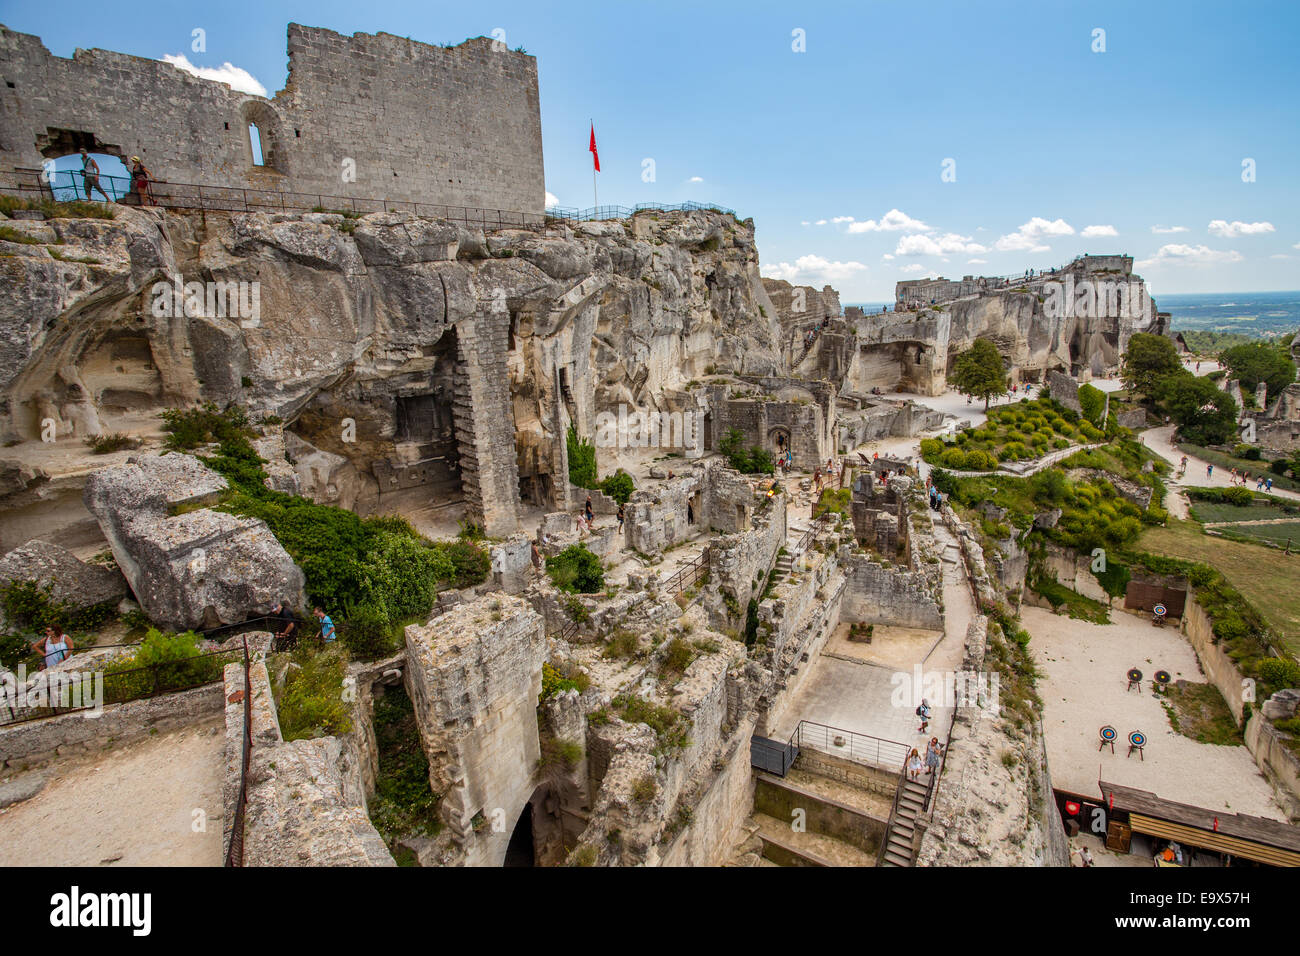 Chateau Des Baux De Provence High Resolution Stock Photography And Images Alamy